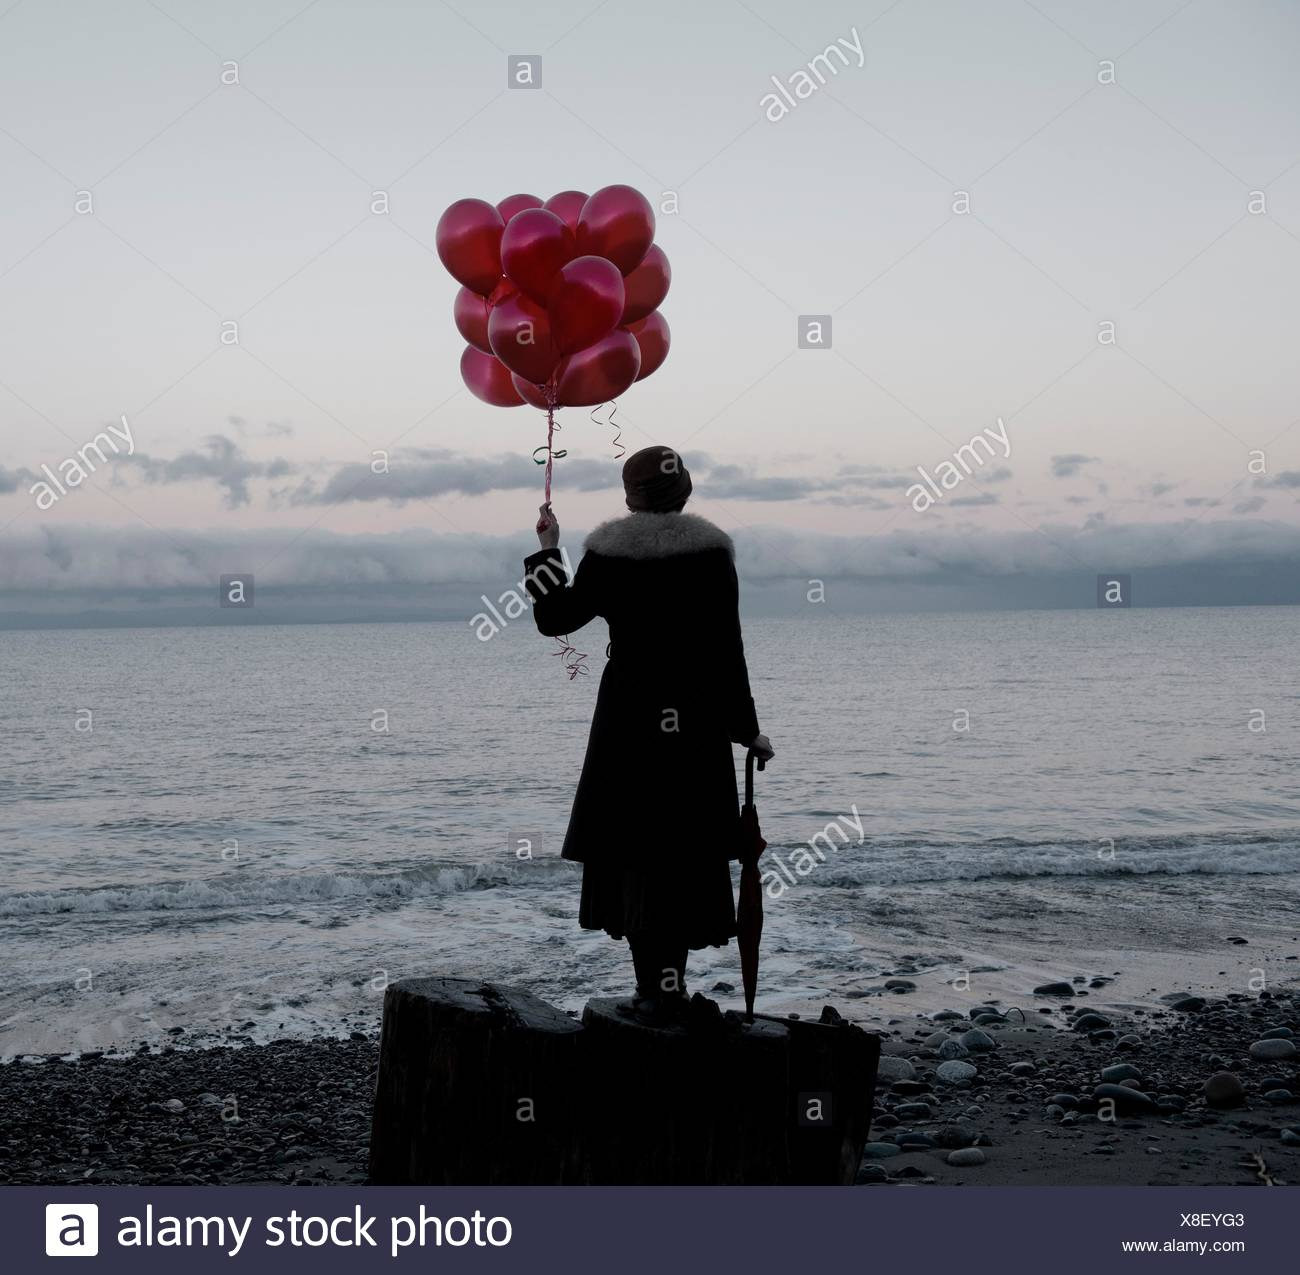 Woman holding bunch of red balloons standing large driftwood tree stump on beach Stock Photo